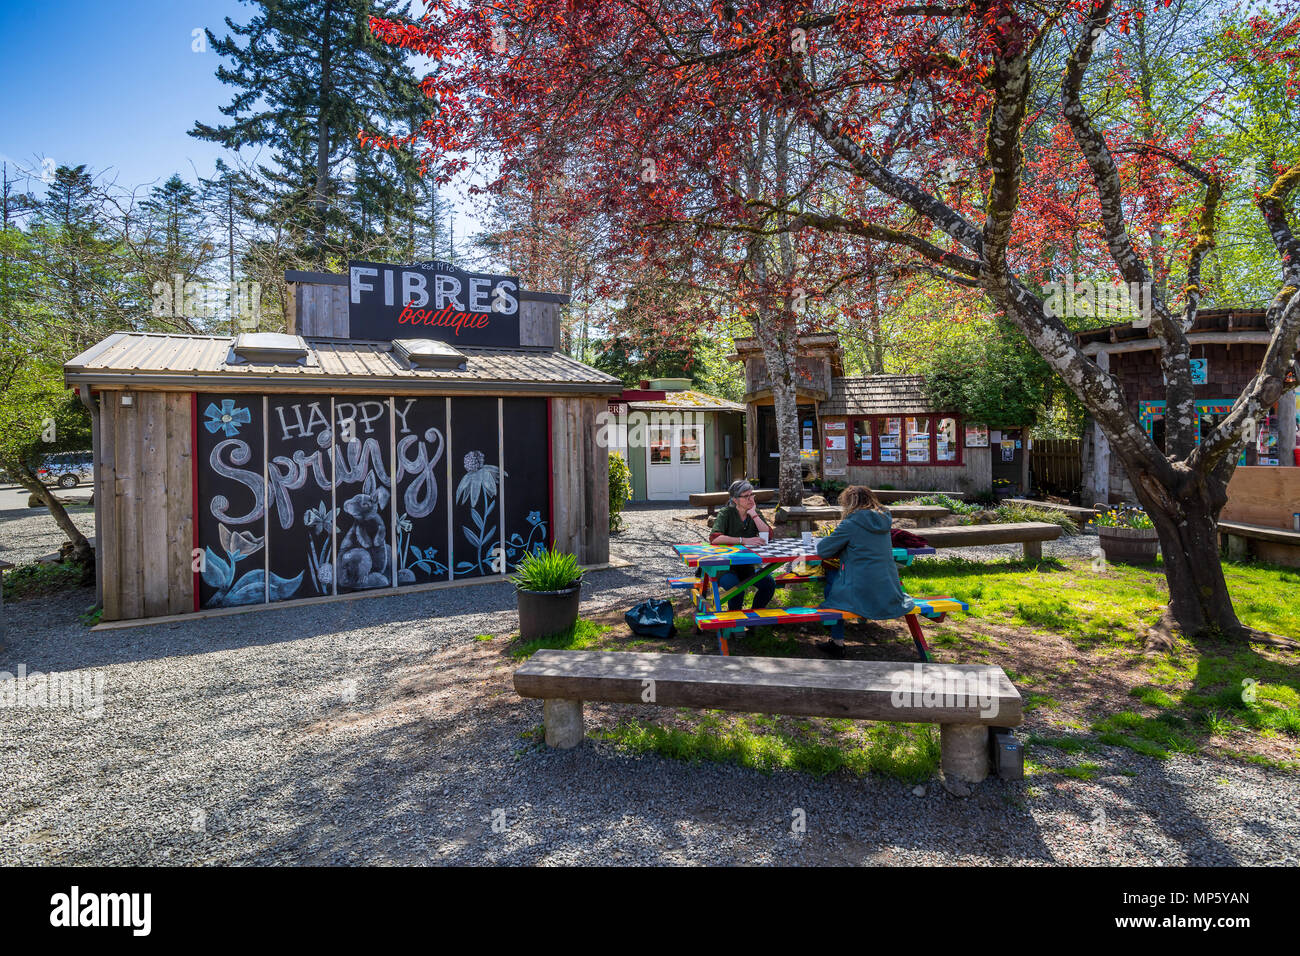 'Fibres' clothing gift shop with artwork on wall, Hornby Island, BC, Canada. - Stock Image